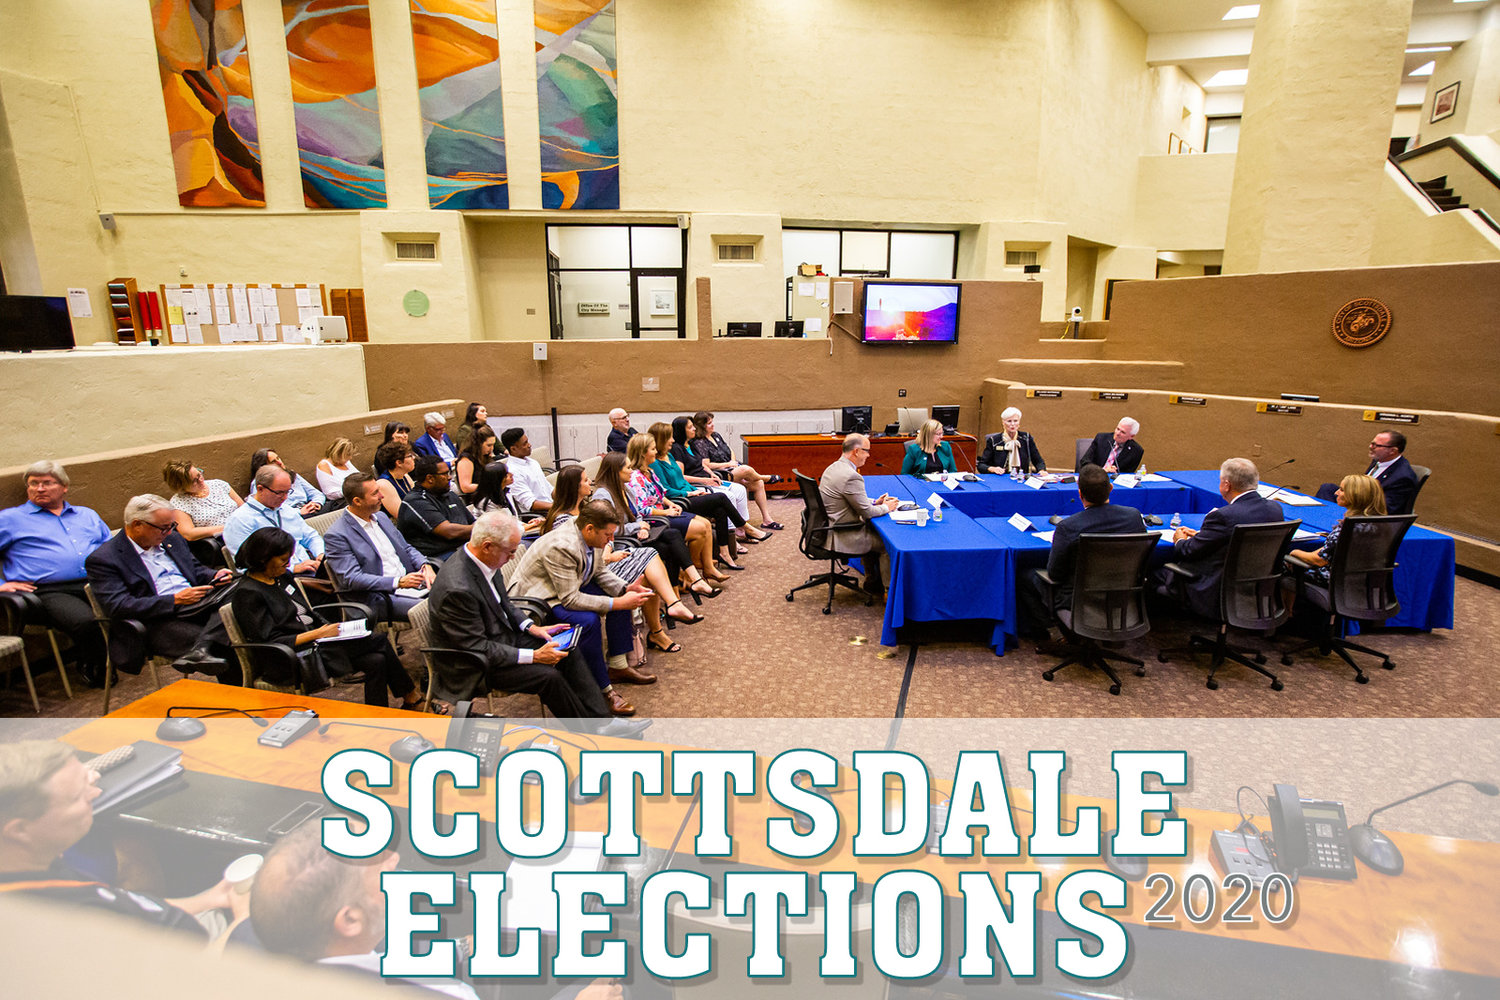 The Scottsdale City Council candidates opine about the perceived difficult parts of becoming an elected member, how they cope with workplace stress and how their skillset can be leveraged for several years if they are elected. Pictured are mayors from across the Valley gathered at Scottsdale City Hall, 3939 N. Drinkwater Blvd. for a 2019 event.